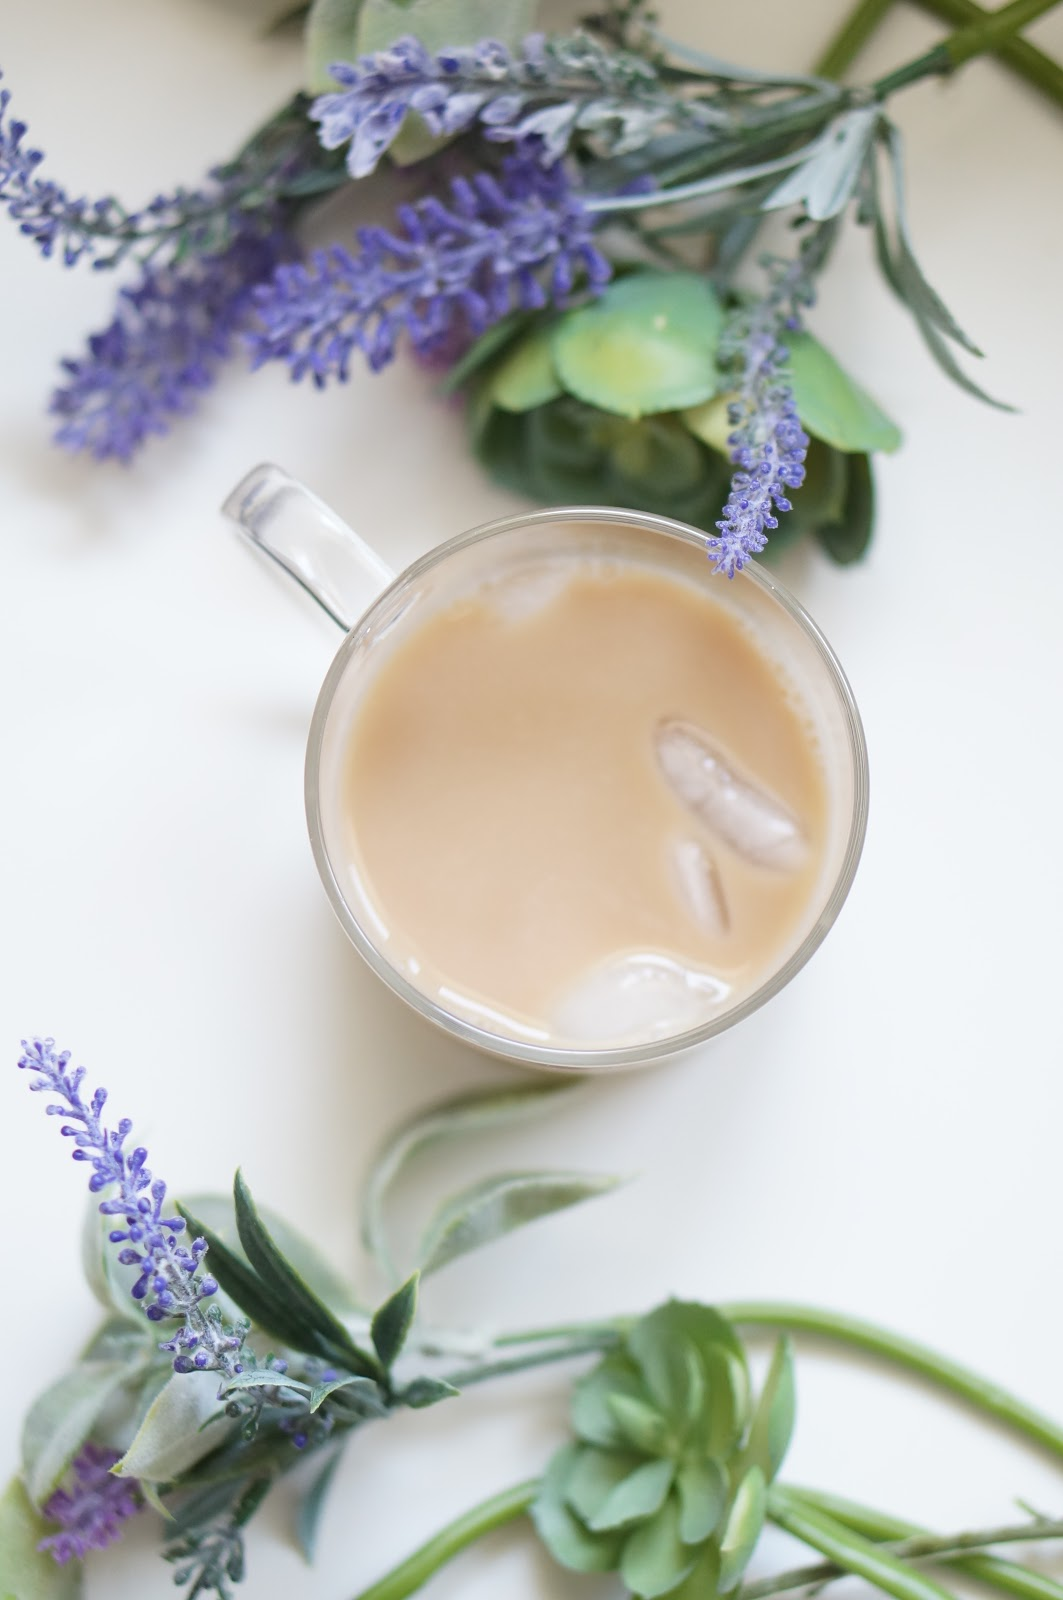 Popular North Carolina style blogger Rebecca Lately shares her recipe for Iced Lavender Chai Latte.  Click here to check out this delicious summer drink!